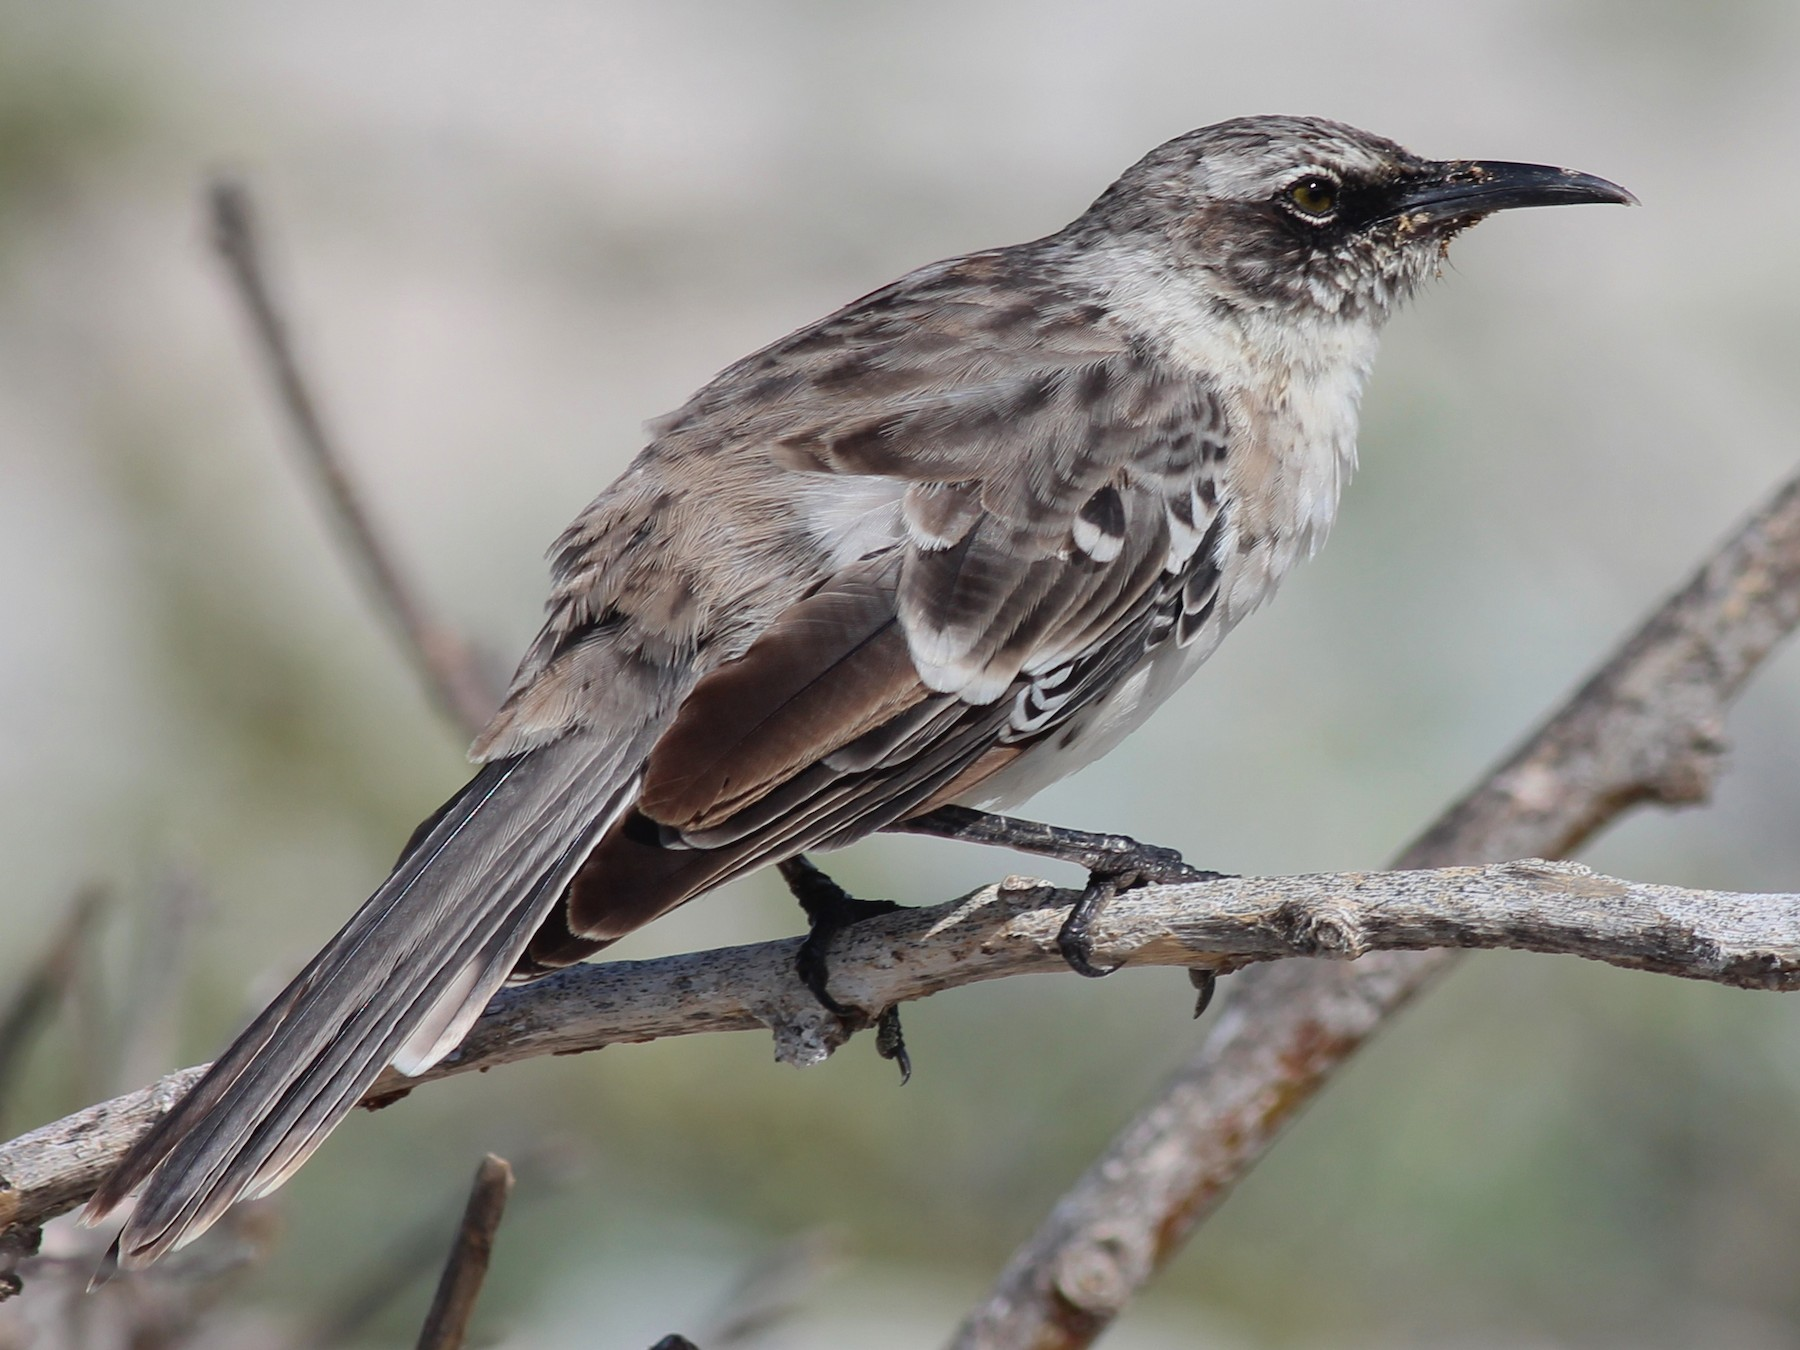 Galapagos Mockingbird - Shawn Billerman